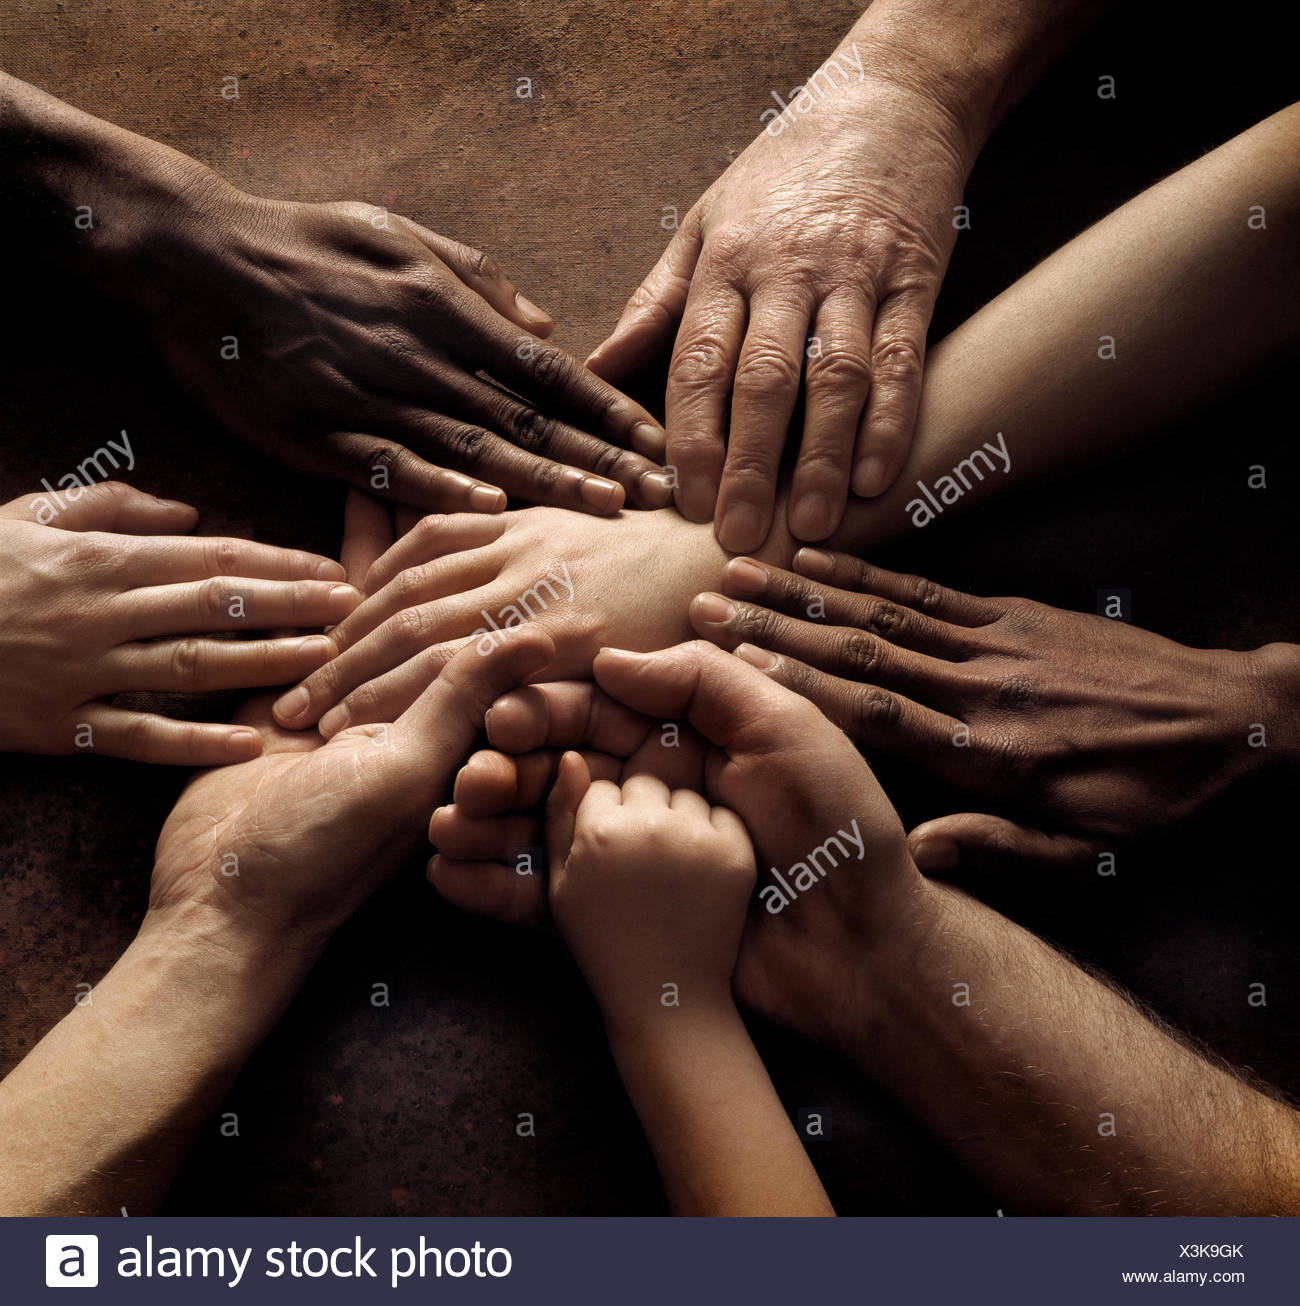 Close-up of people's hands holding ensemble Photo Stock